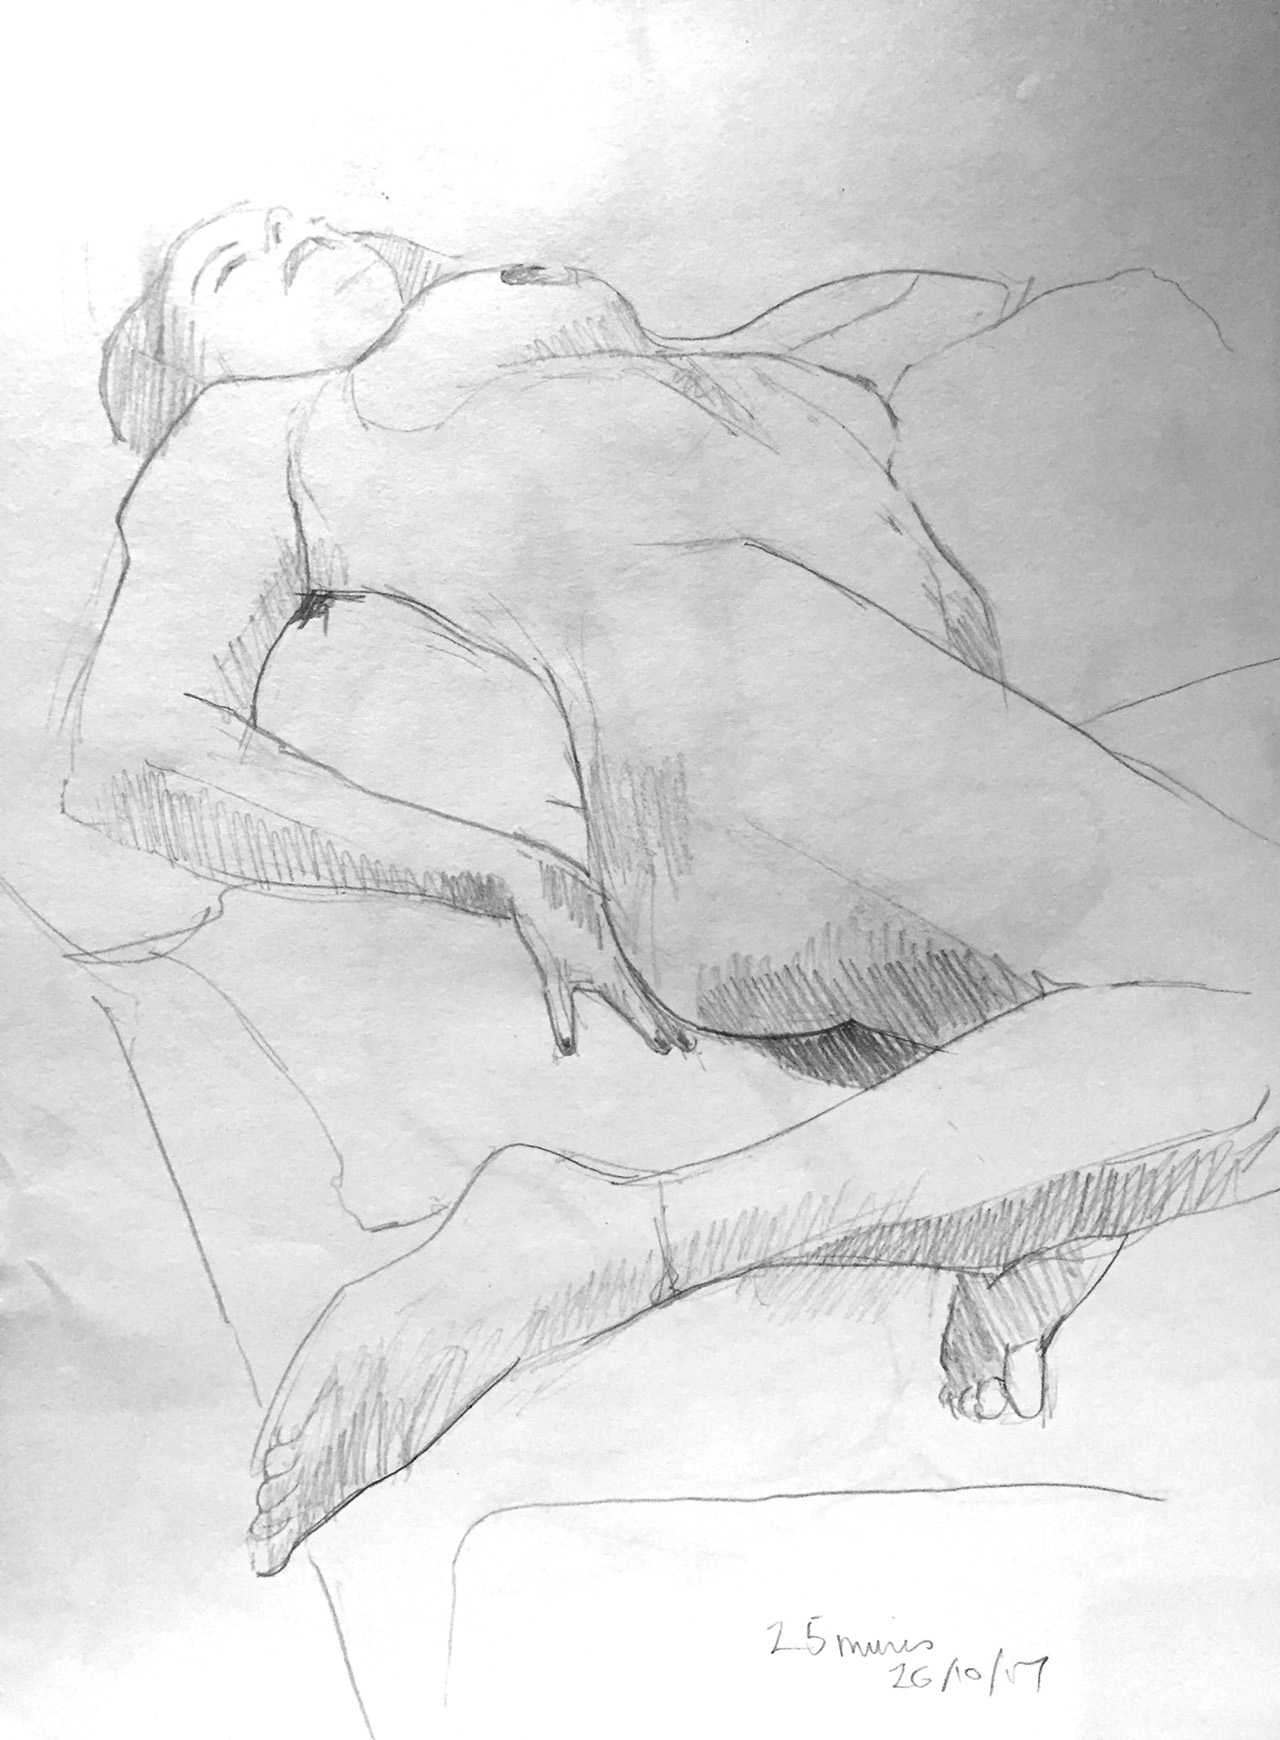 Life Drawing Sketch 2 Session 26/10/17